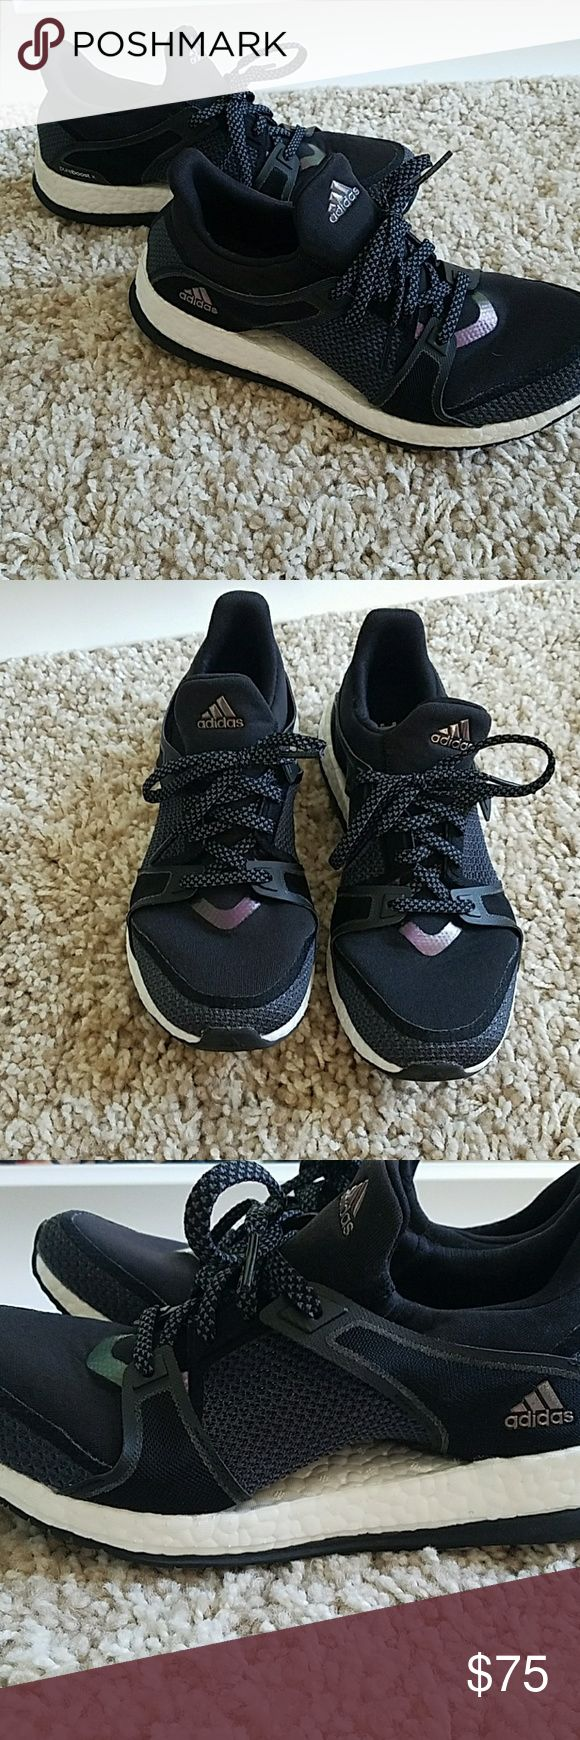 Adidas pure boost sneakers 7.5 Adidas pure boost. Size 7.5. True to size. Very comfy. Black and dark grey with a small purple-ish reflector on top. Great condition. Only worn once. Selling because I have dozens of shoes I don't wear. adidas Shoes Athletic Shoes